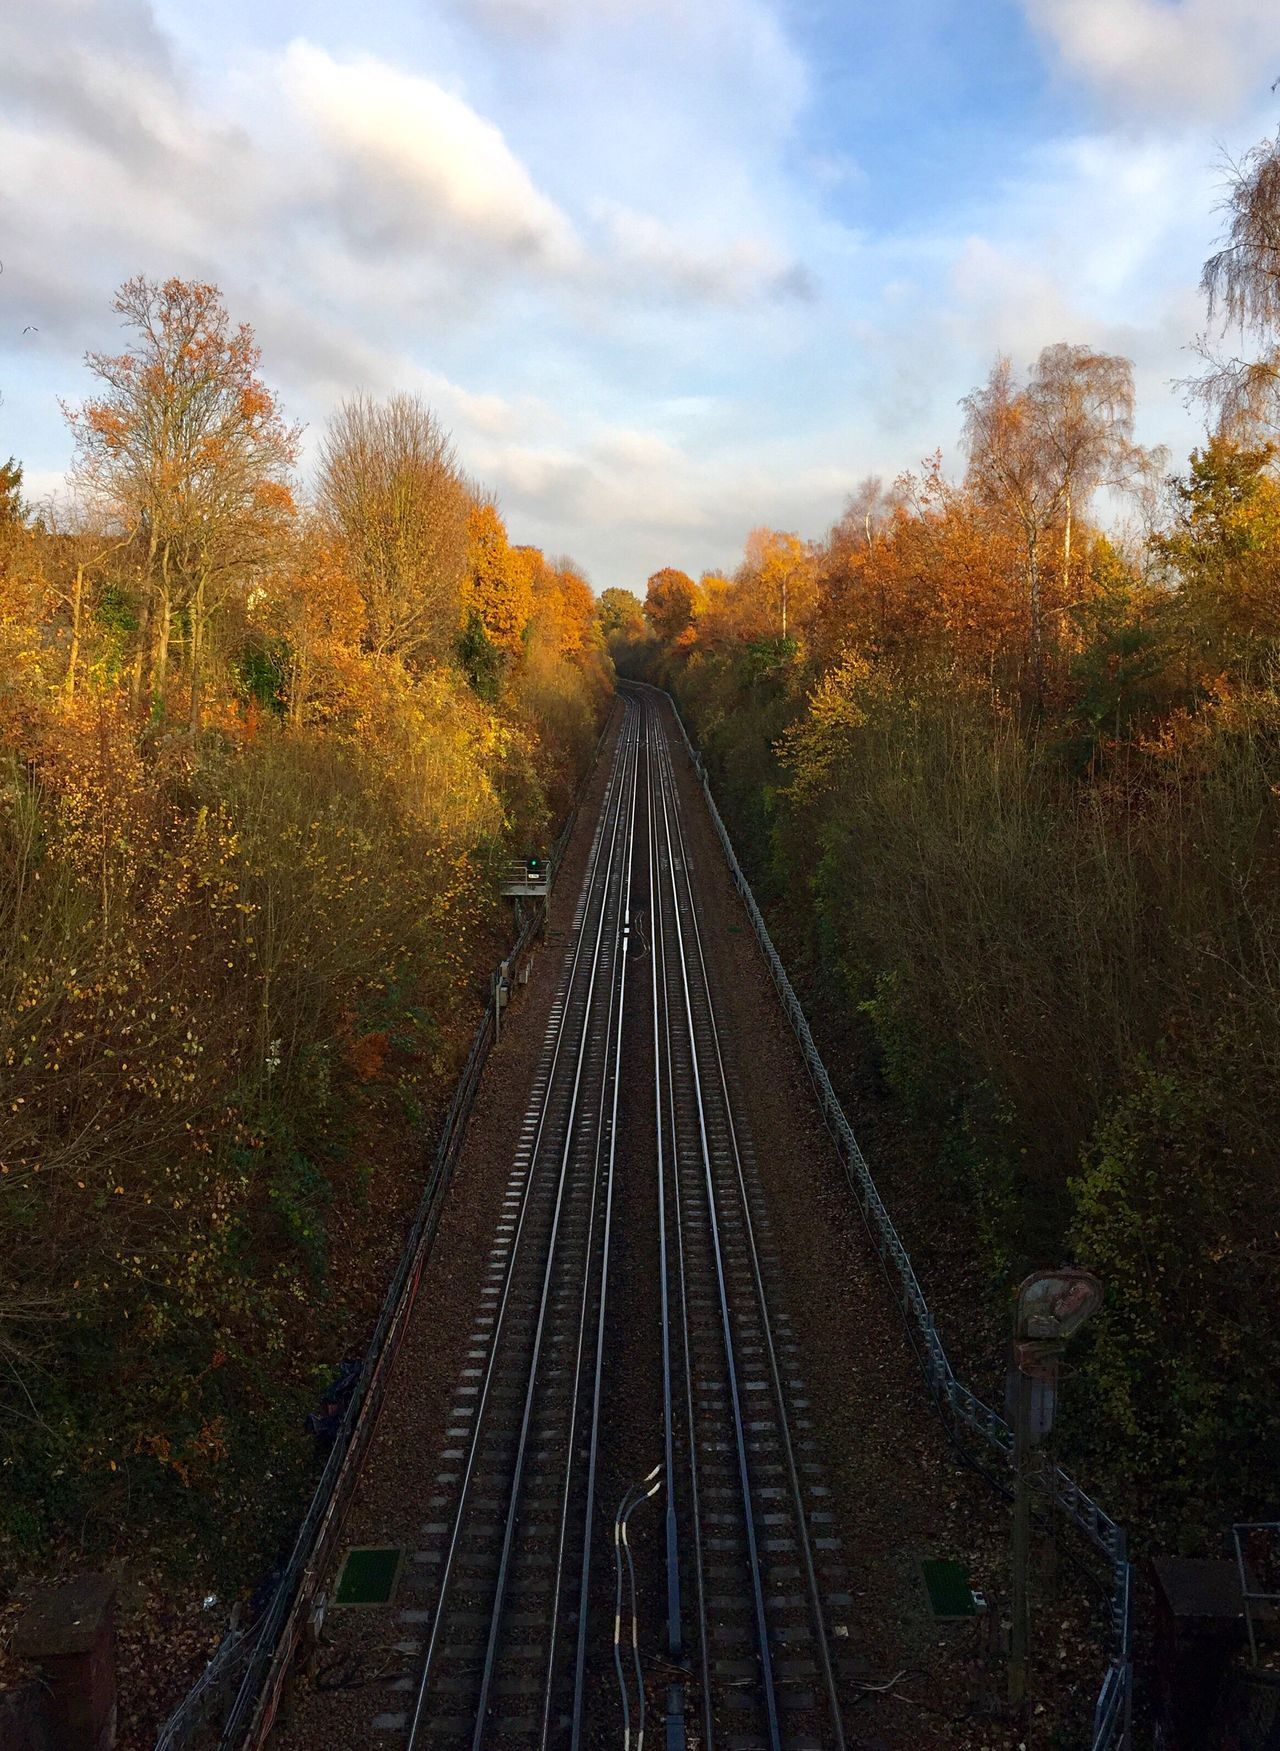 Tree Railroad Track Autumn Rail Transportation Change Nature Transportation Sky No People Beauty In Nature Forest Tree Trees Outdoors Day Scenics Growth Cloud - Sky Treetop